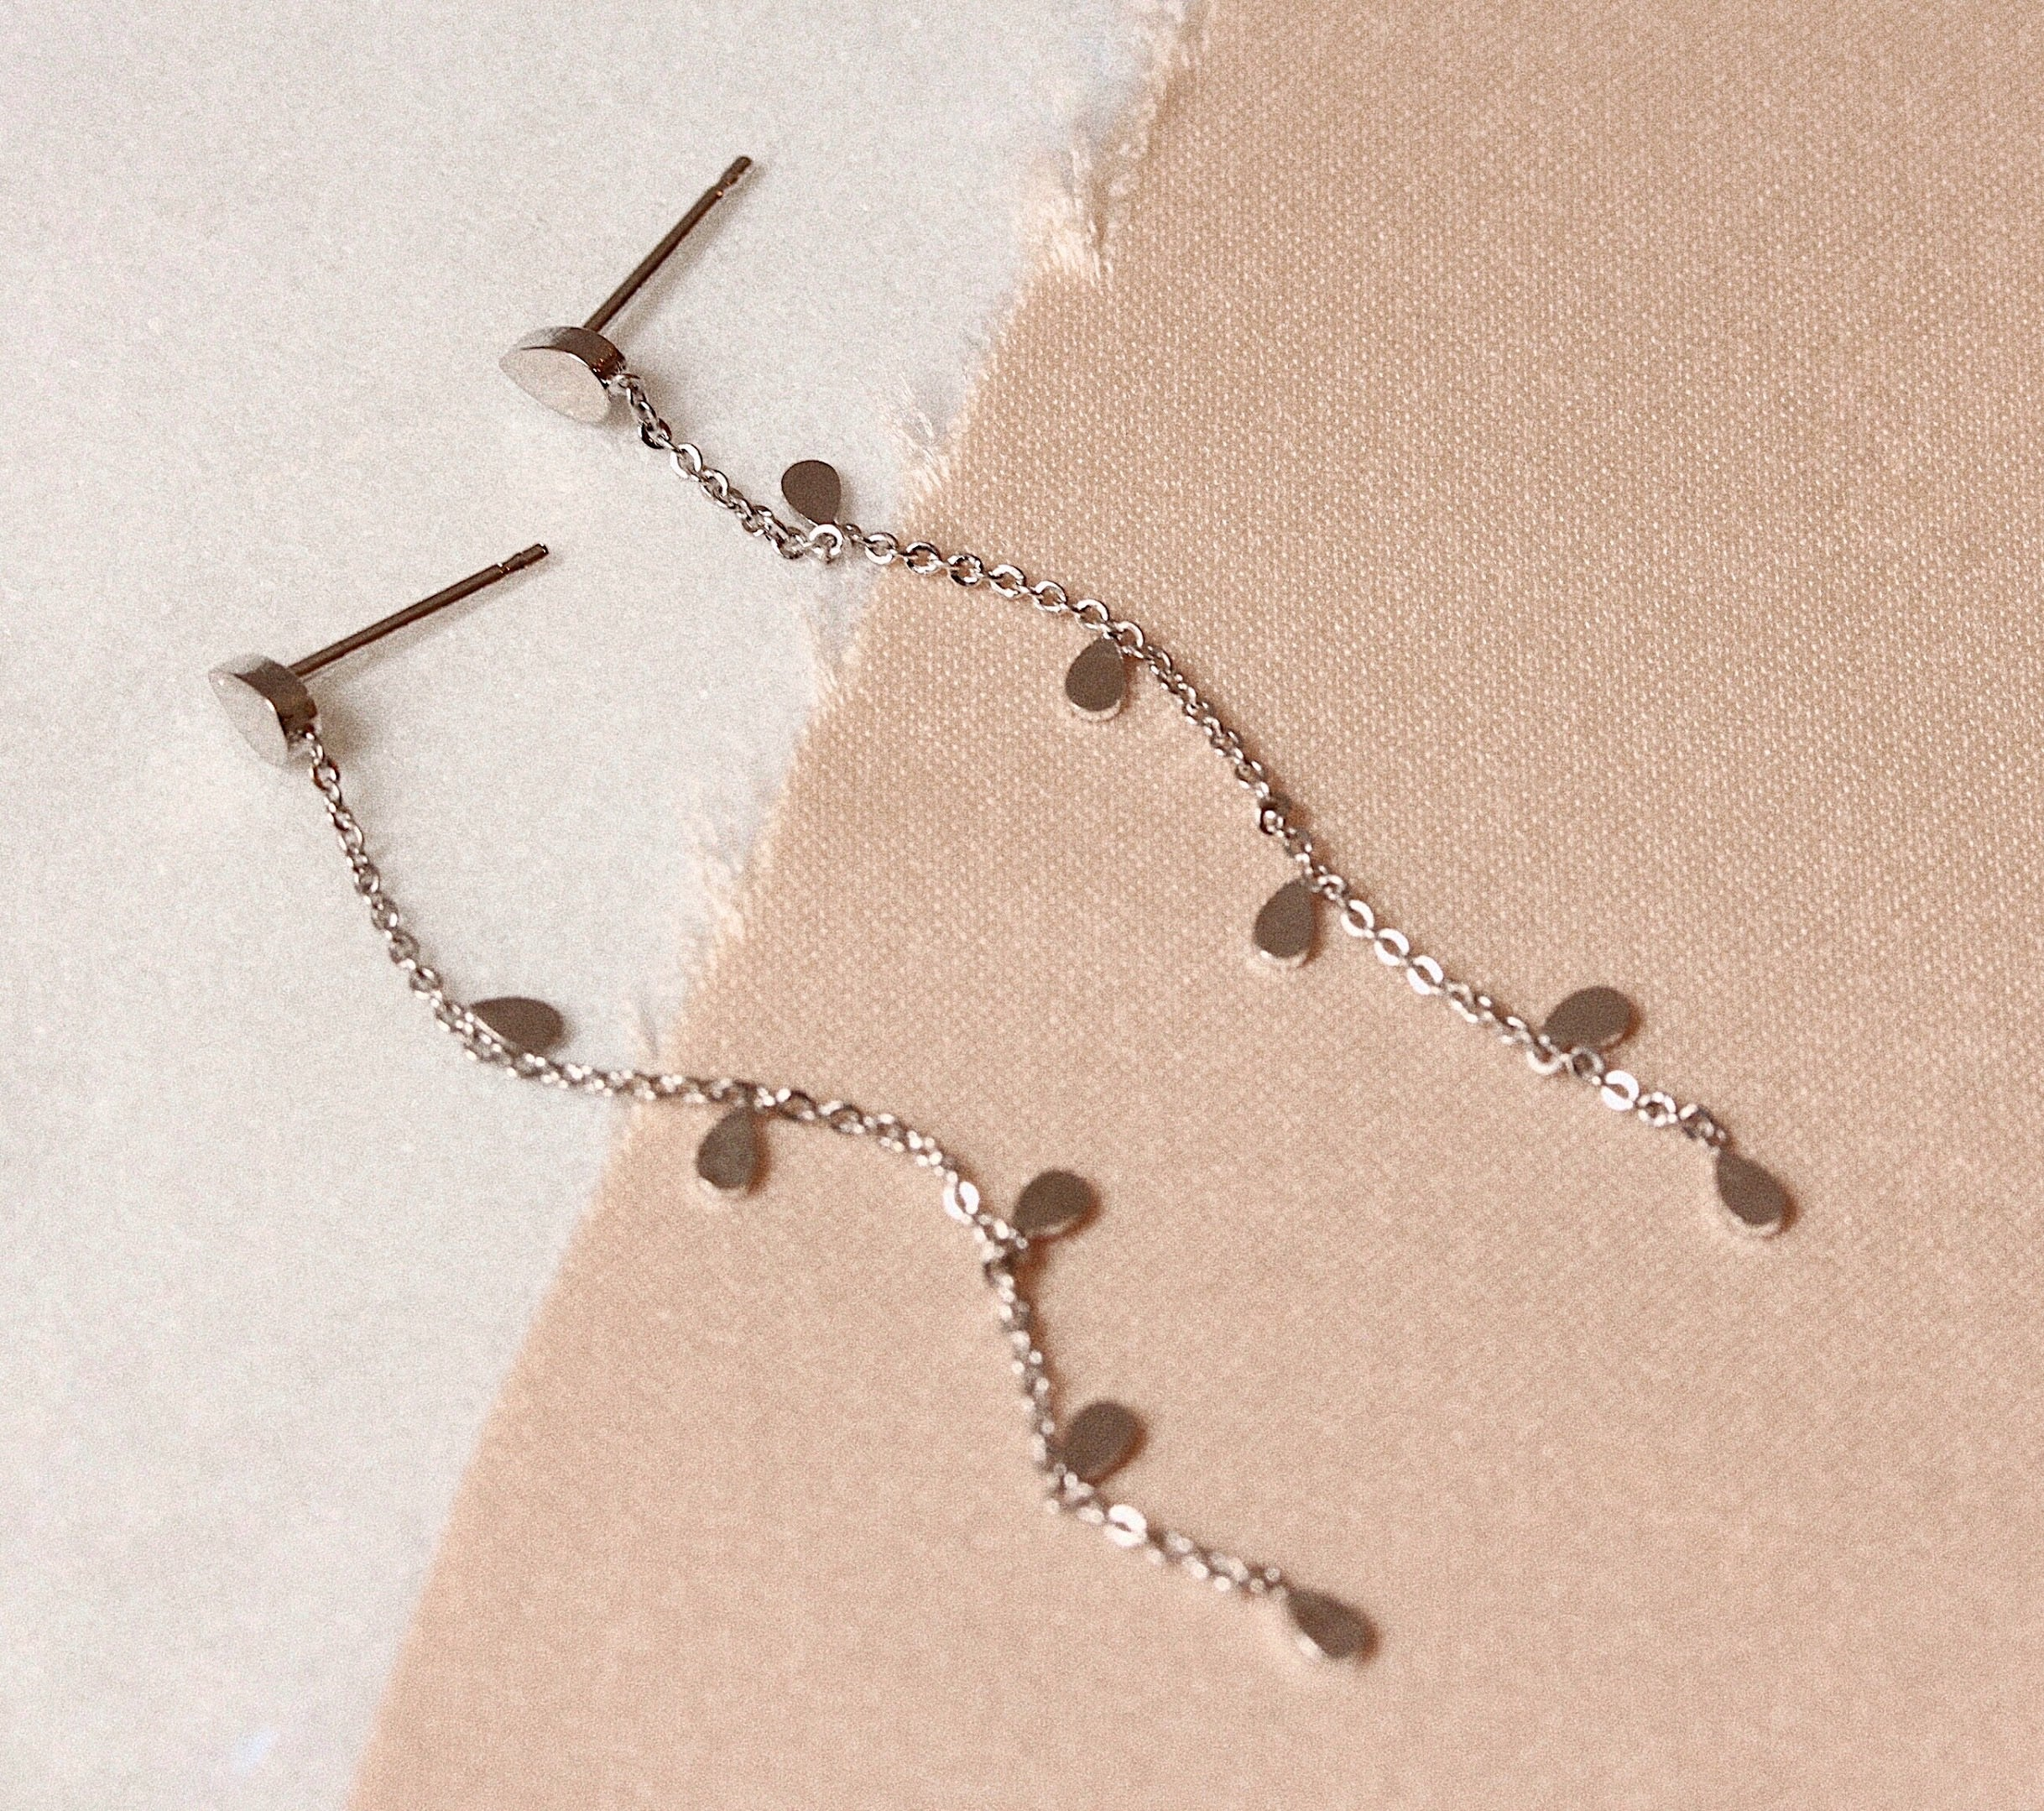 Chain Dangle Earrings with Teardrop Charms